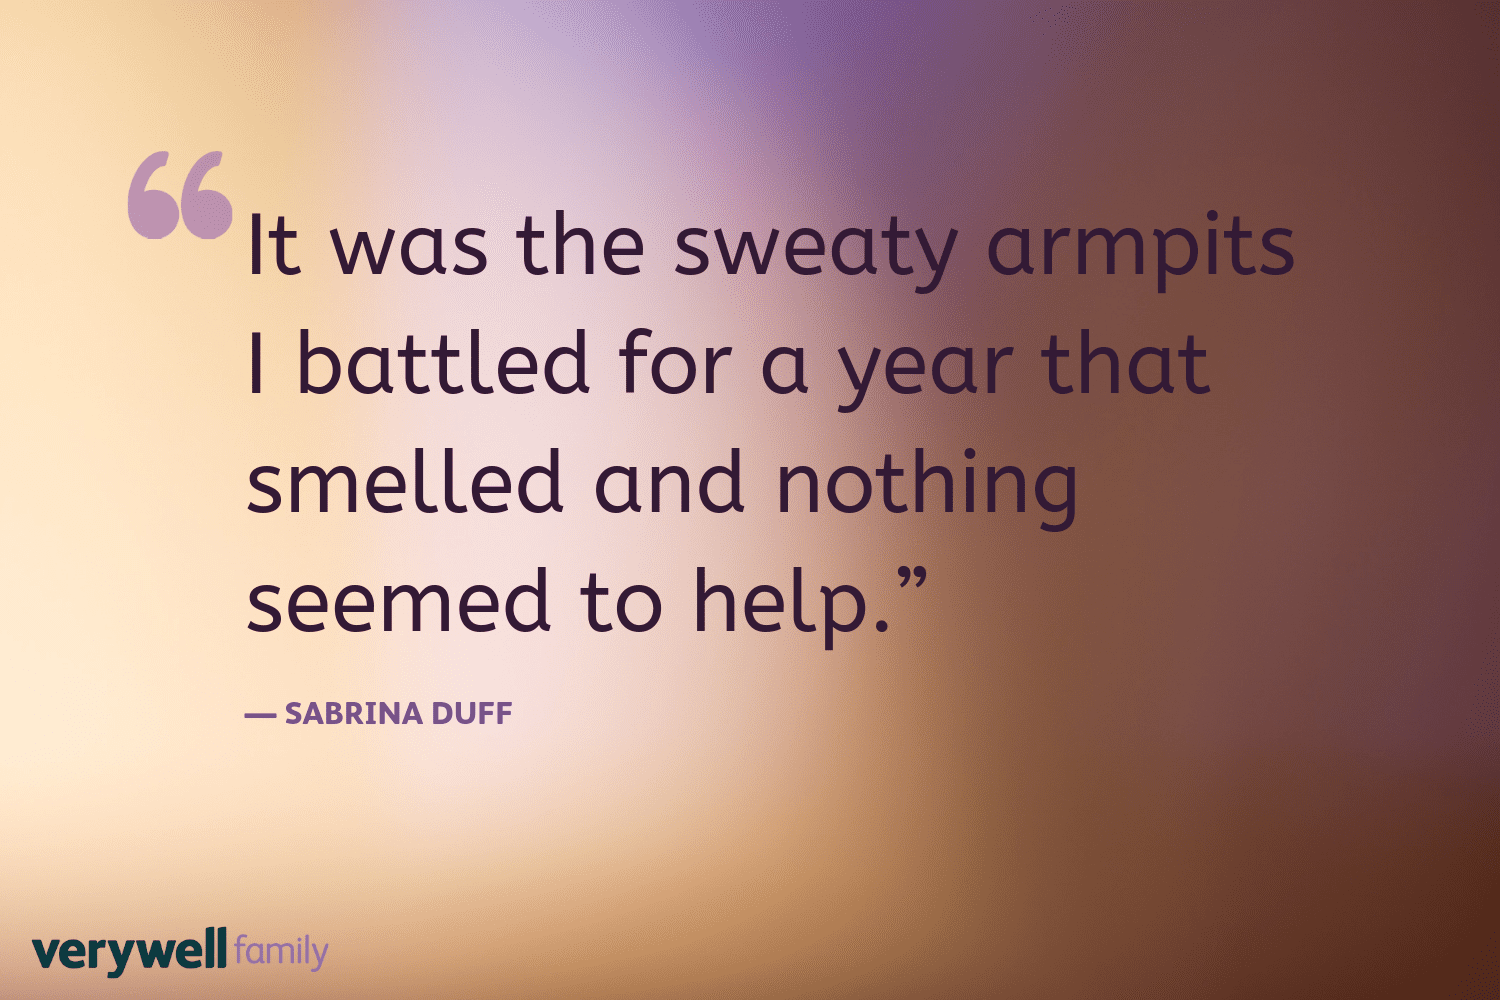 Verywell Family postpartum quote by Sabrina Duff